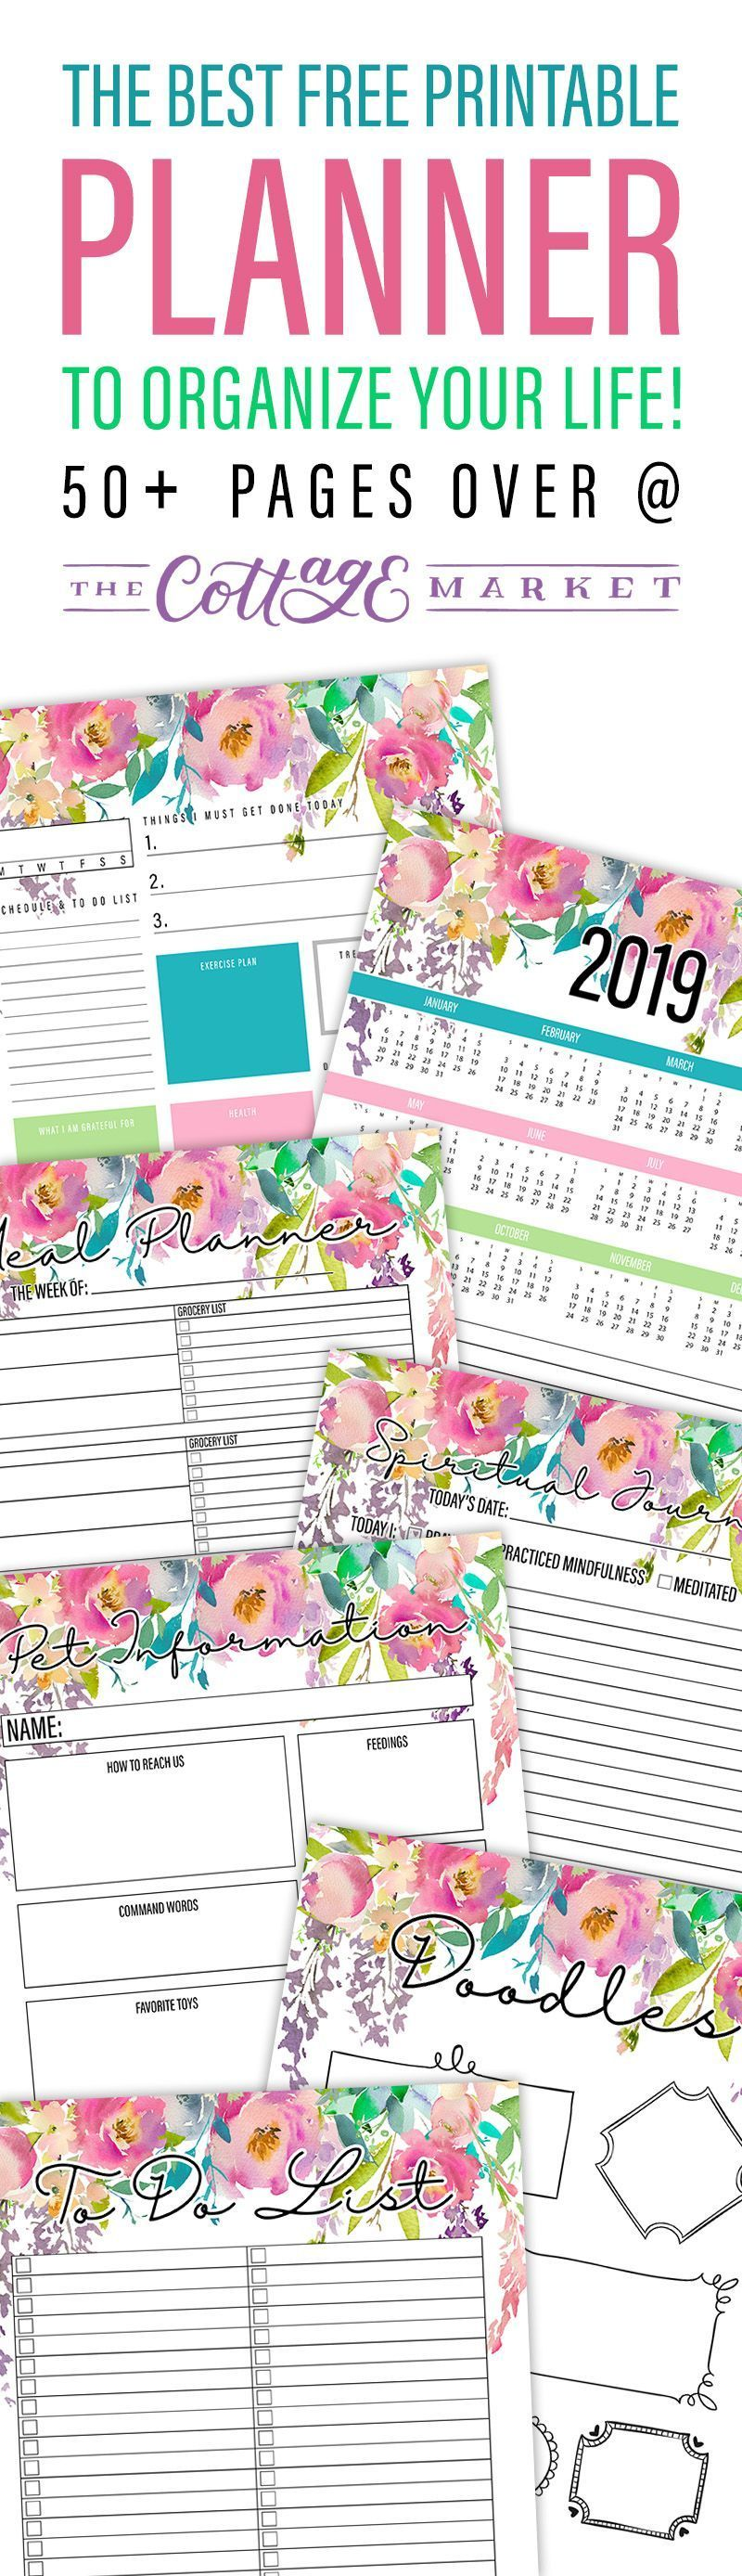 The Best 2019 Free Printable Planner to Organize Your Life! /// 50+ Pages #50freeprintables The Best 2019 Free Printable Planner to Organize Your Life! /// 50+ Pages - The Cottage Market #50freeprintables The Best 2019 Free Printable Planner to Organize Your Life! /// 50+ Pages #50freeprintables The Best 2019 Free Printable Planner to Organize Your Life! /// 50+ Pages - The Cottage Market #50freeprintables